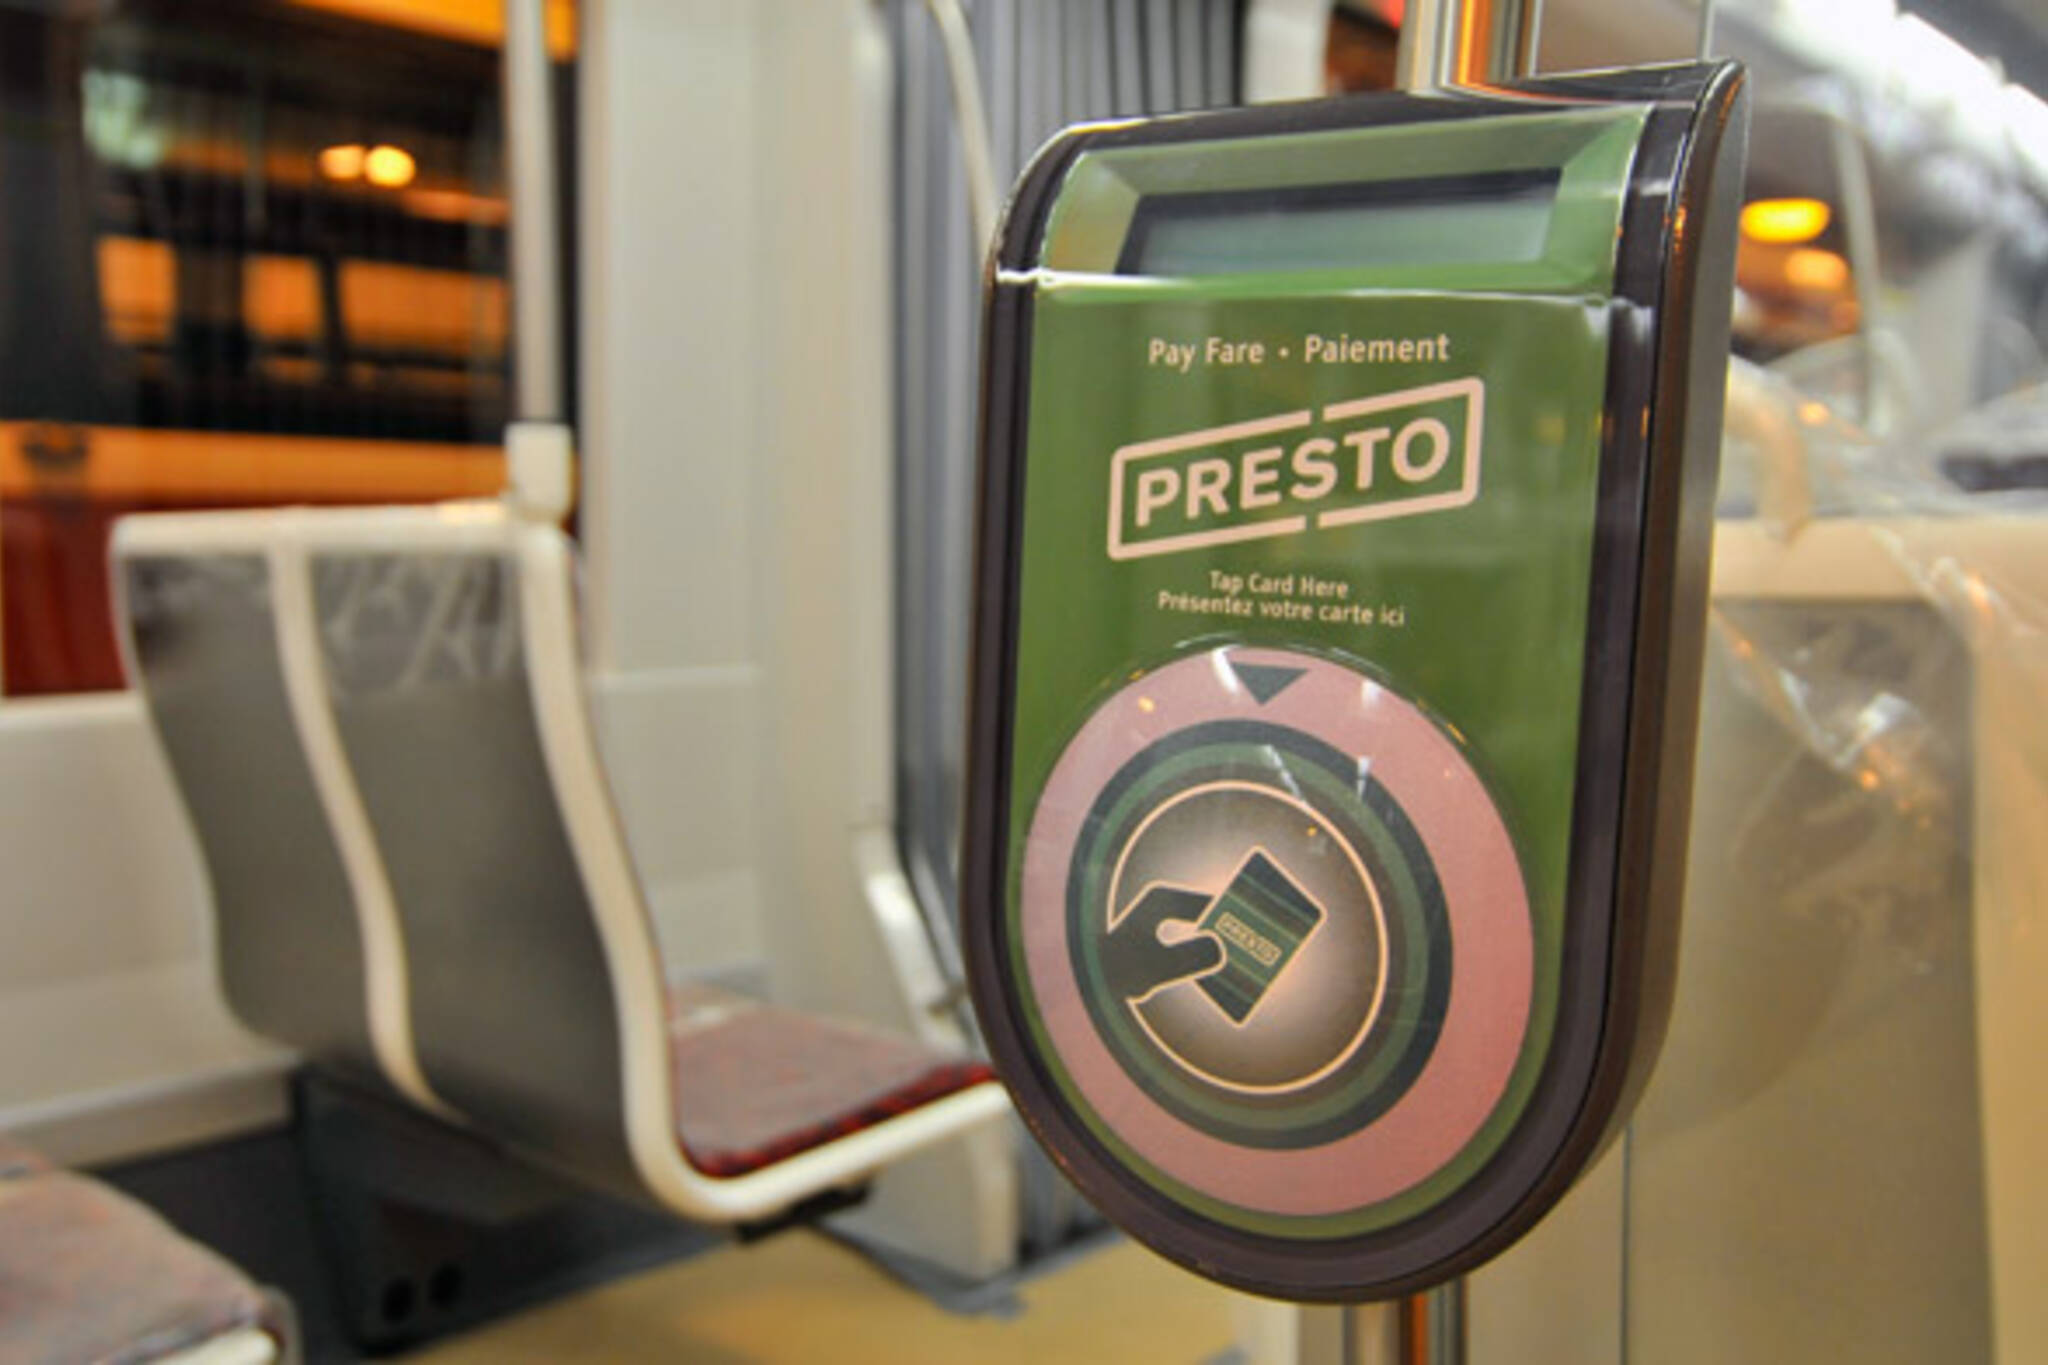 Presto website shutdown